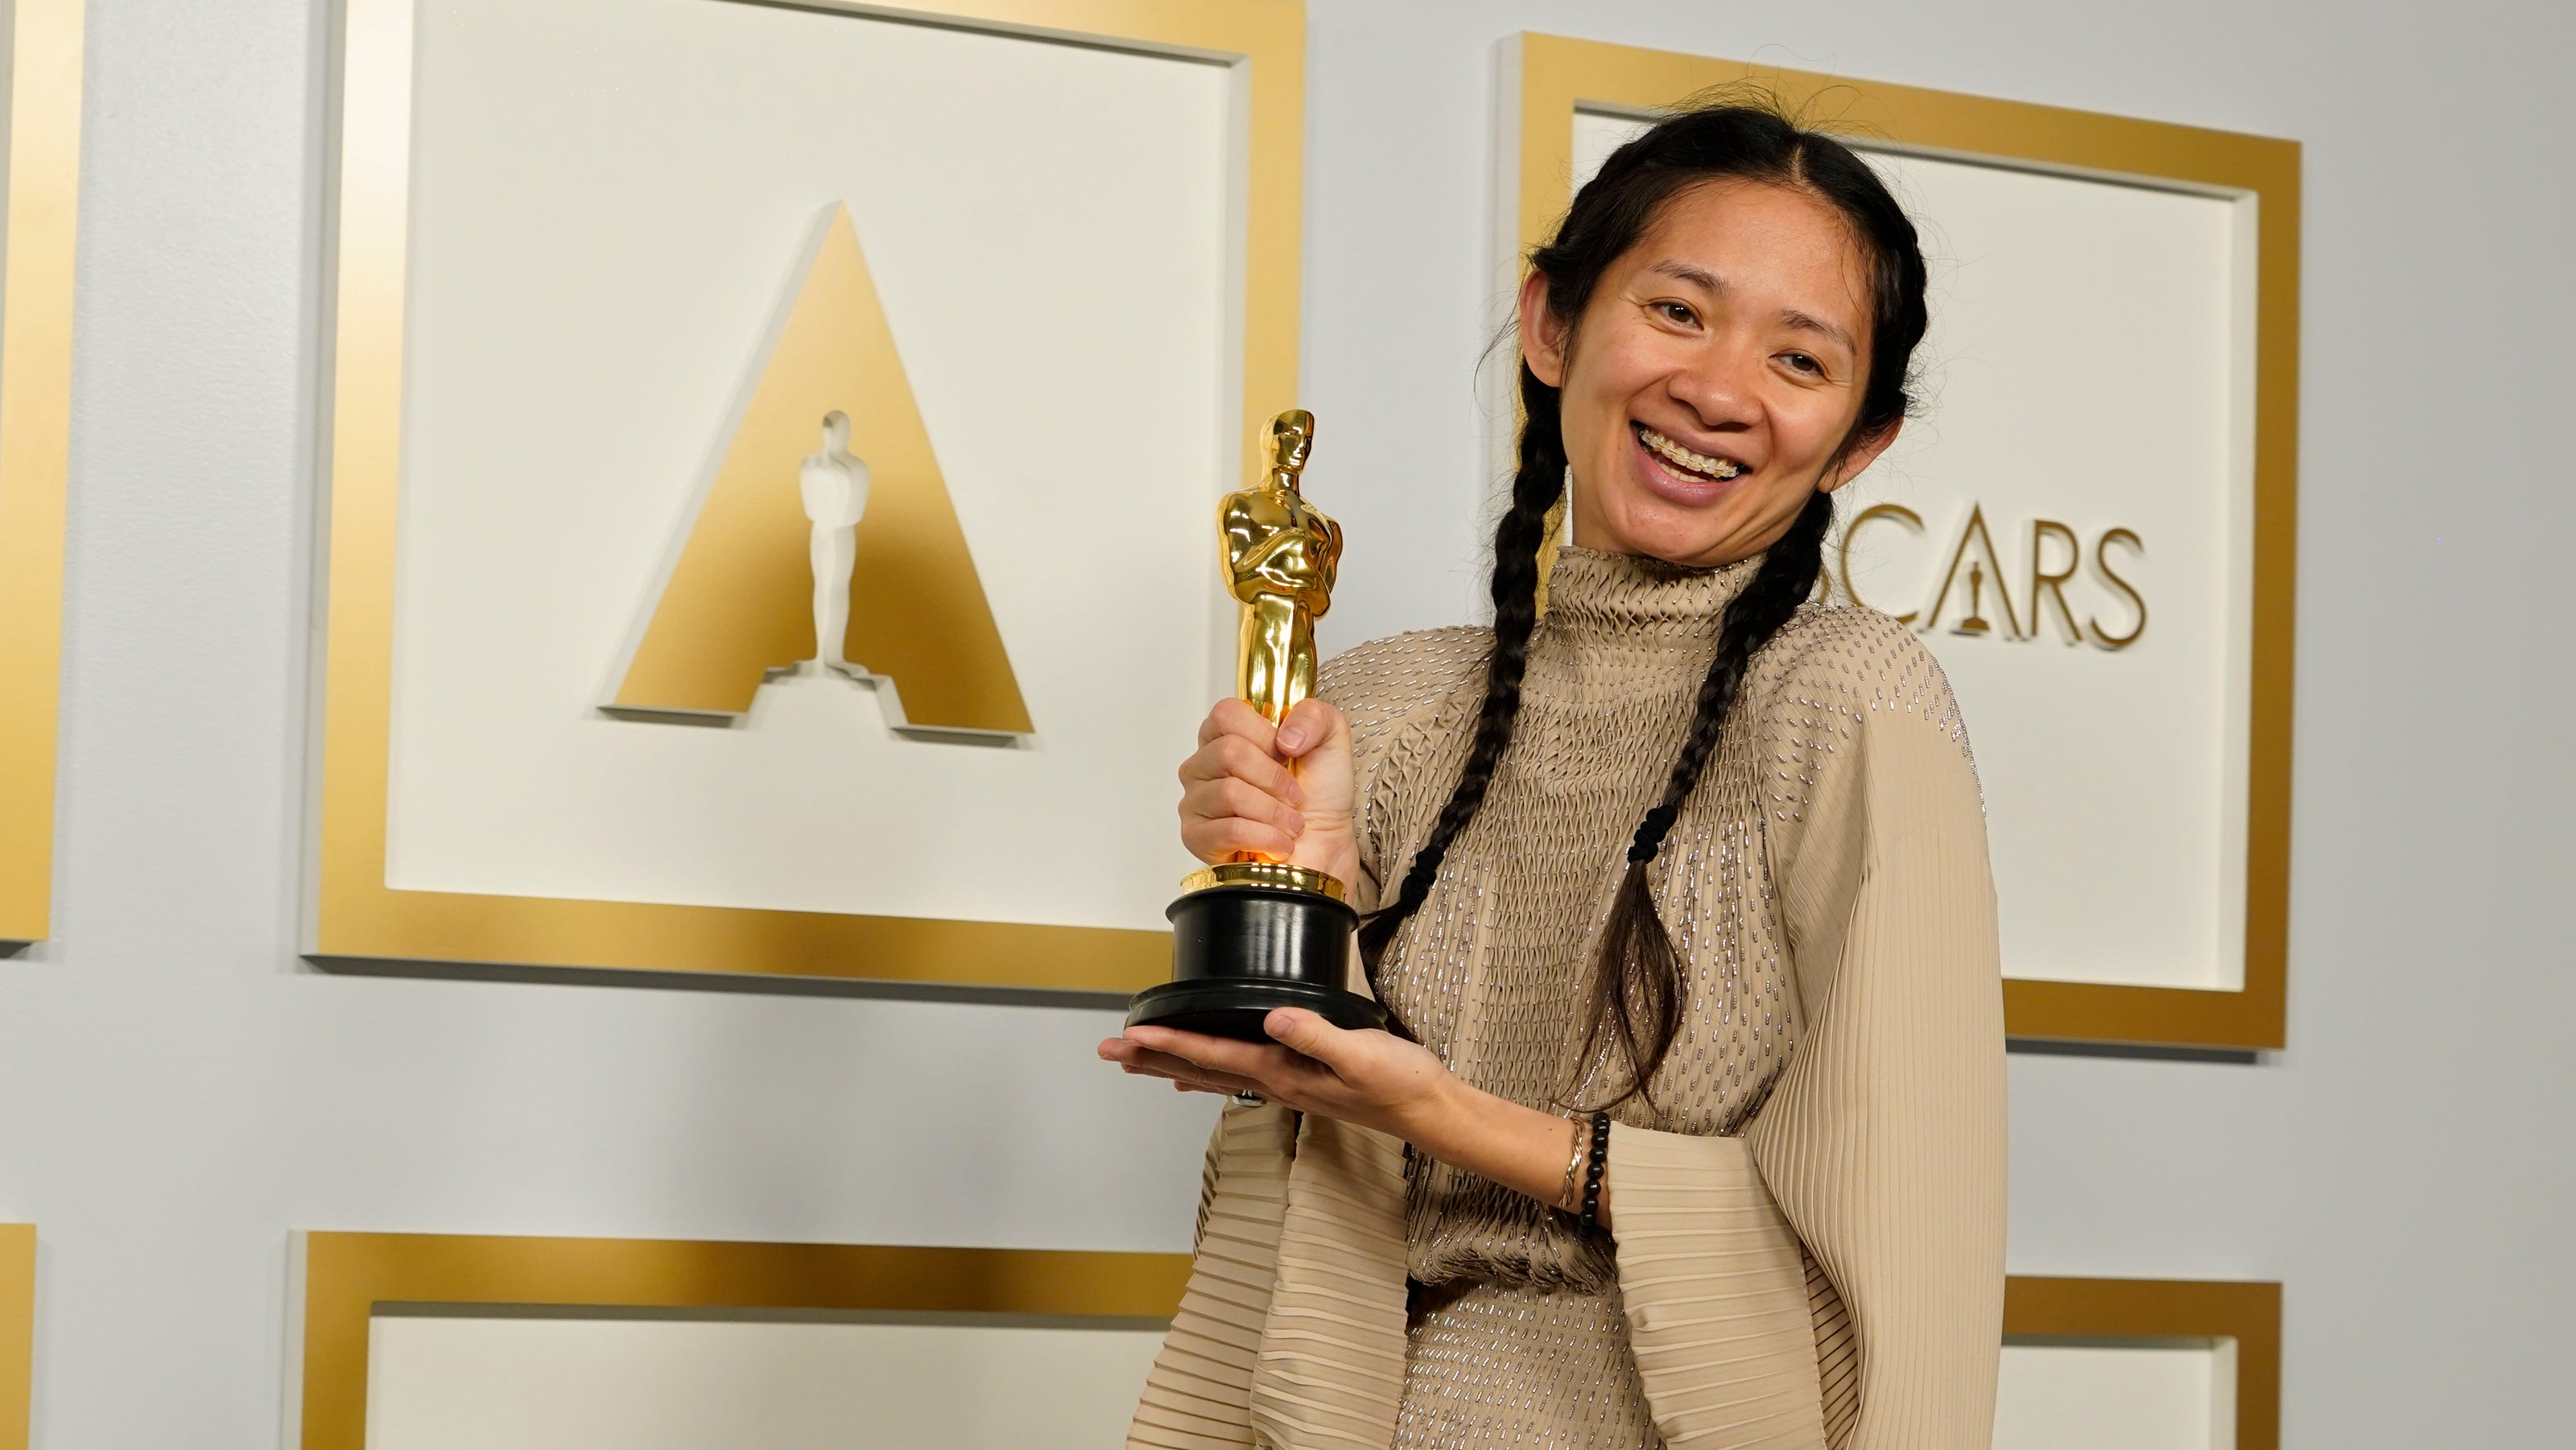 www.northjersey.com: Oscars a turning point for Asians in Hollywood as Chloe Zhao, 'Nomadland' win big | Mary Chao